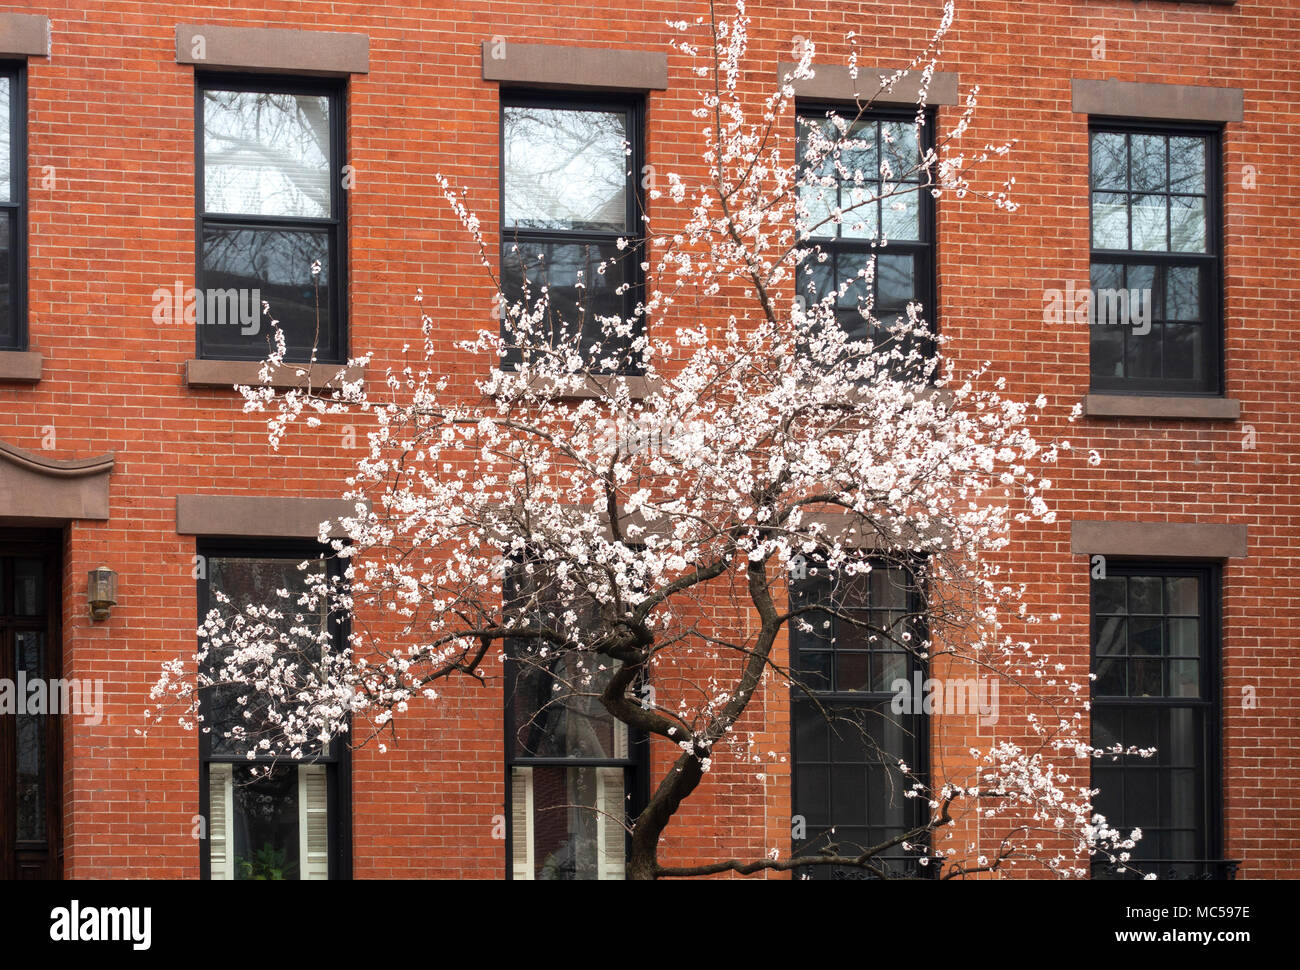 white-cherry-blossoms-prunus-avium-bloom